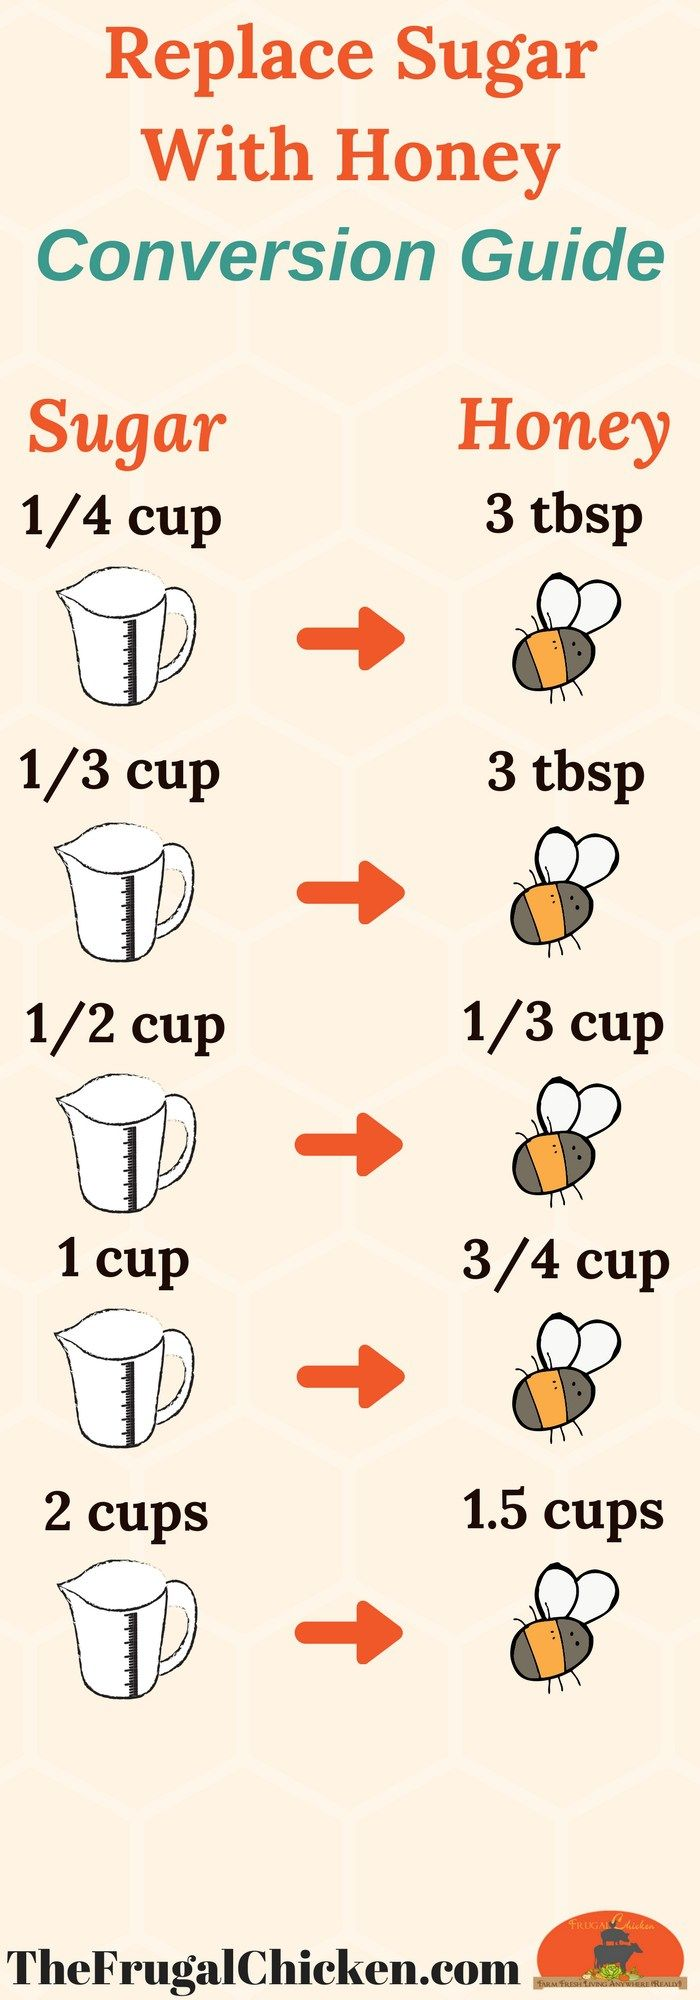 Want to create healthy dessert recipes without sugar? Make healthy desserts easy by replacing sugar with honey - it's simple! Click through for the full conversions to replace sugar with honey. You also need to add baking powder and more so your baked goods turn out perfect!